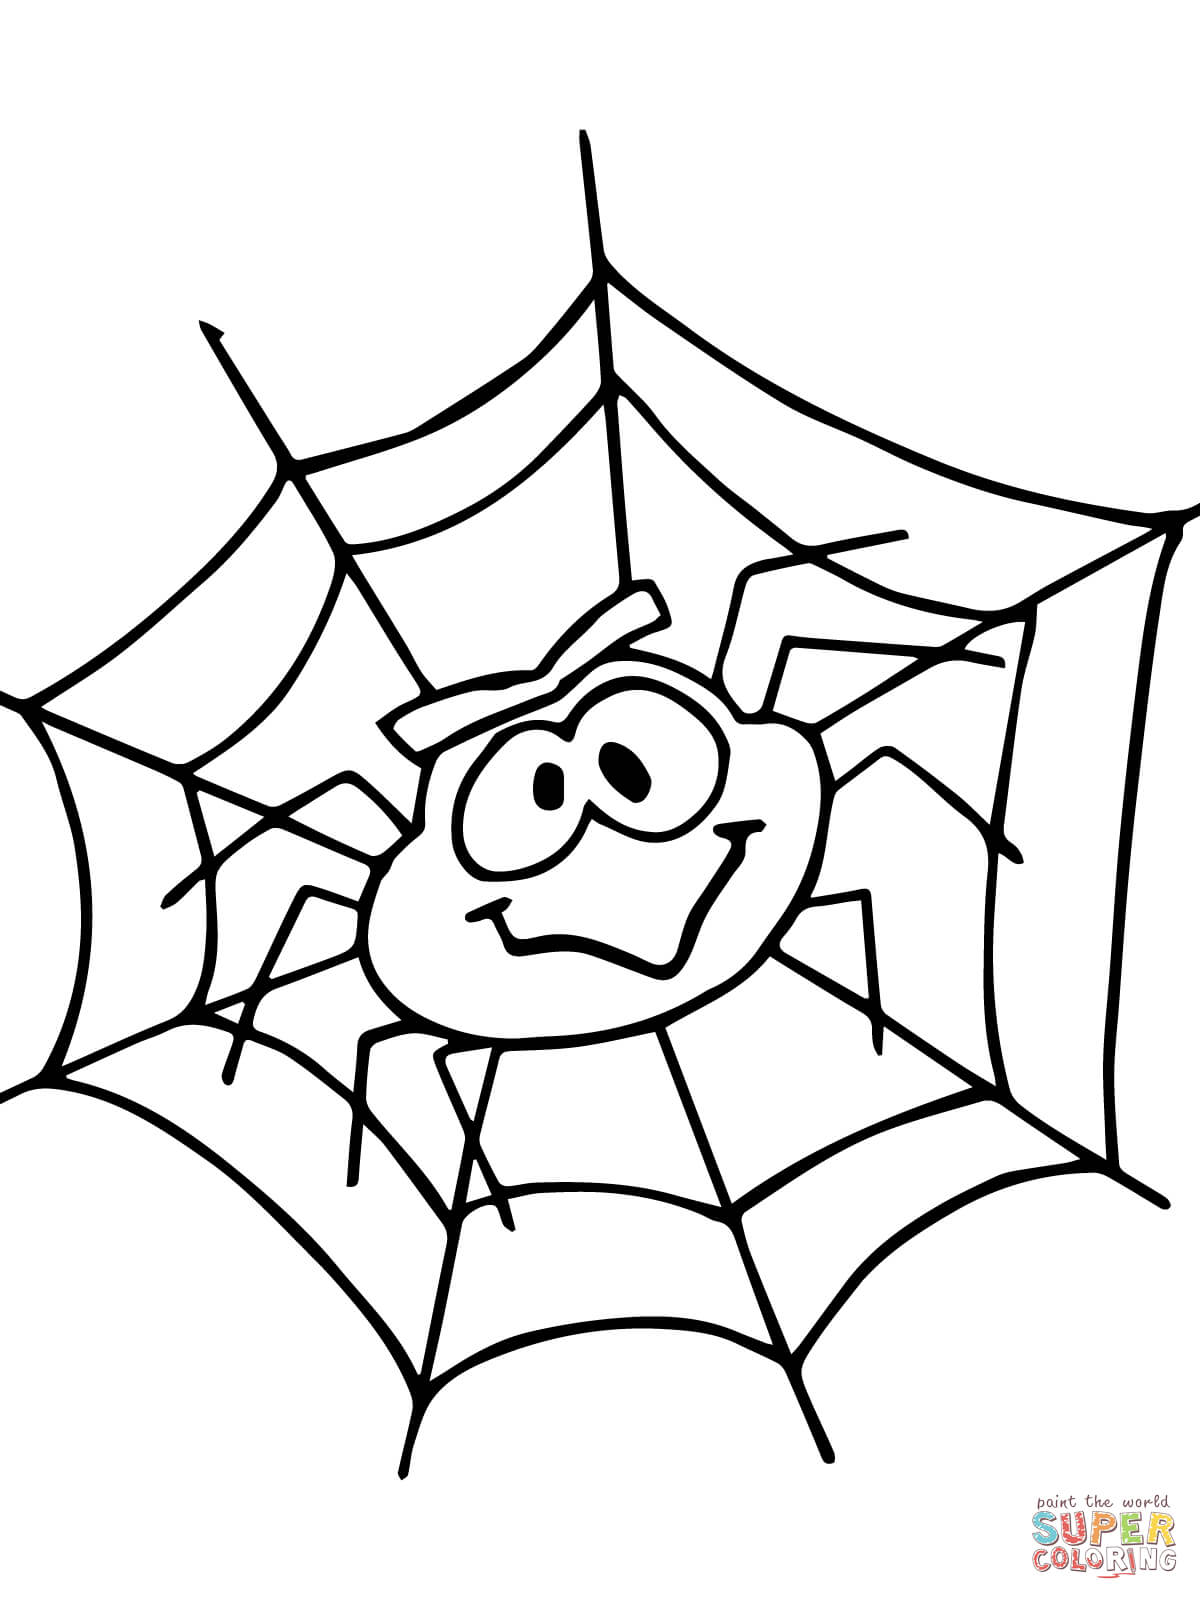 incy wincy spider colouring pages incy wincy spider coloring pages coloring pages spider pages wincy colouring incy